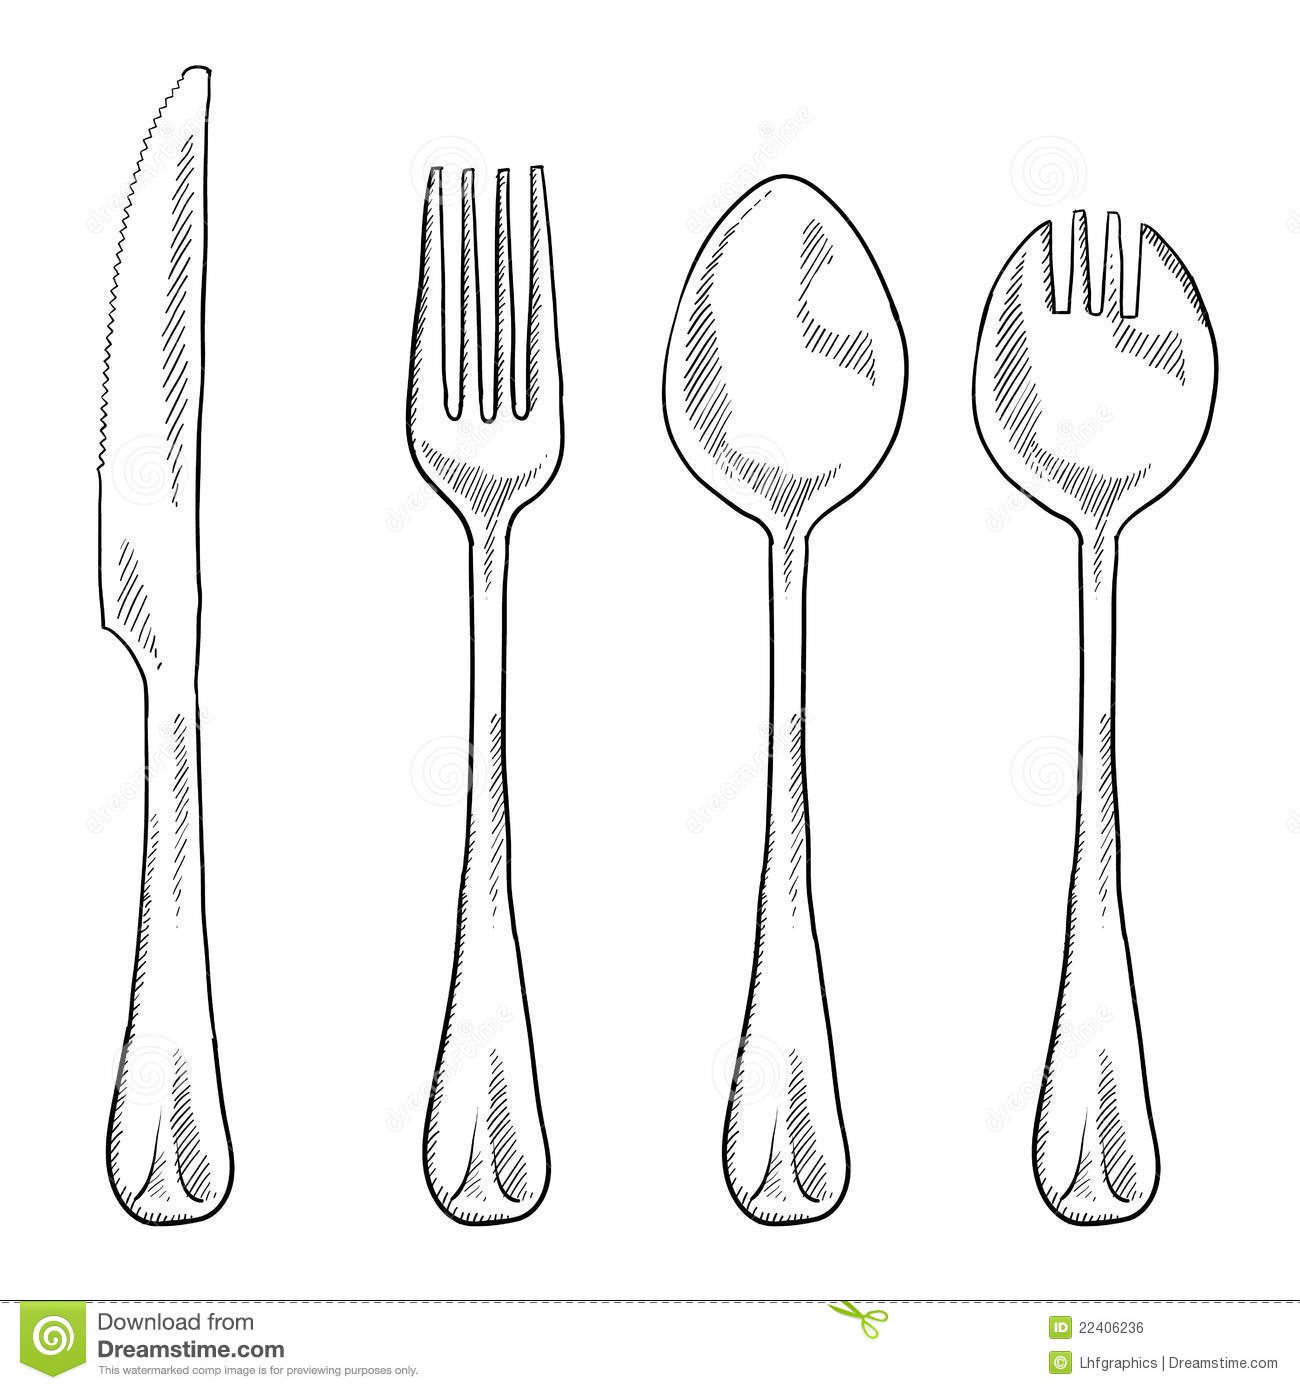 Eating Utensils Drawing Stock Vector. Illustration Of